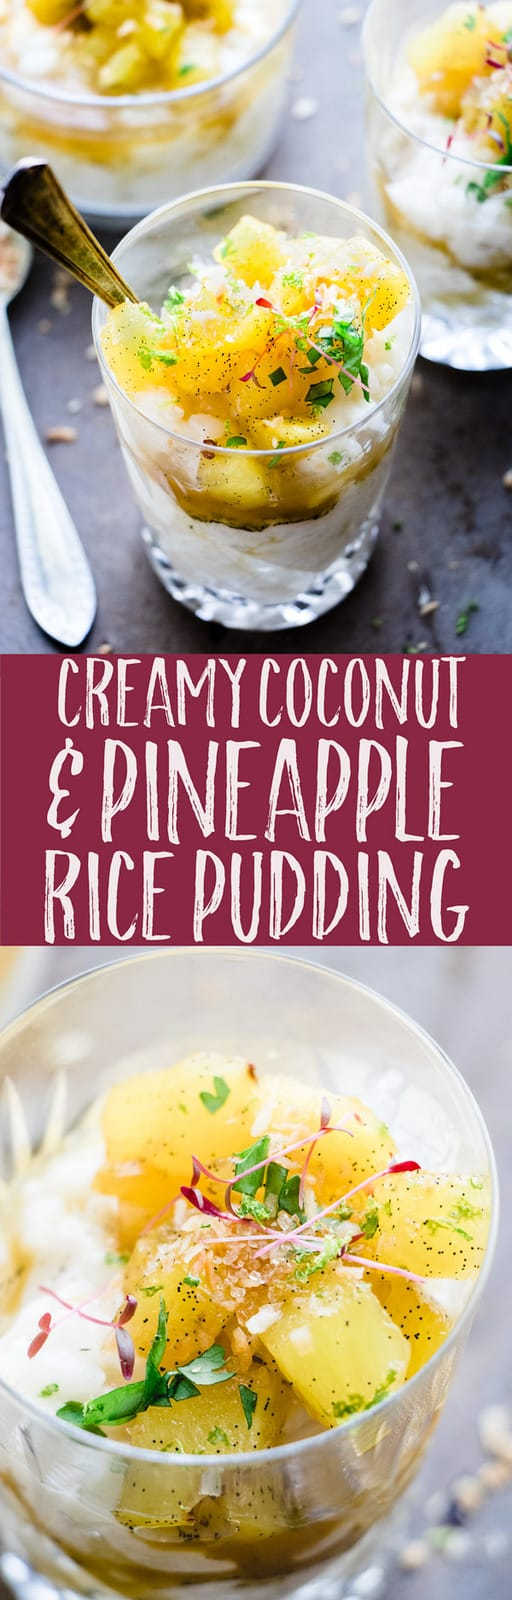 This warm and creamy coconut rice pudding is a the perfect comfort dessert. It's made with fragrant kaffir lime and coconut milk. Topped with vanilla and brown sugar pineapple, it's family friendly and vegan. Ready in 25 minutes.